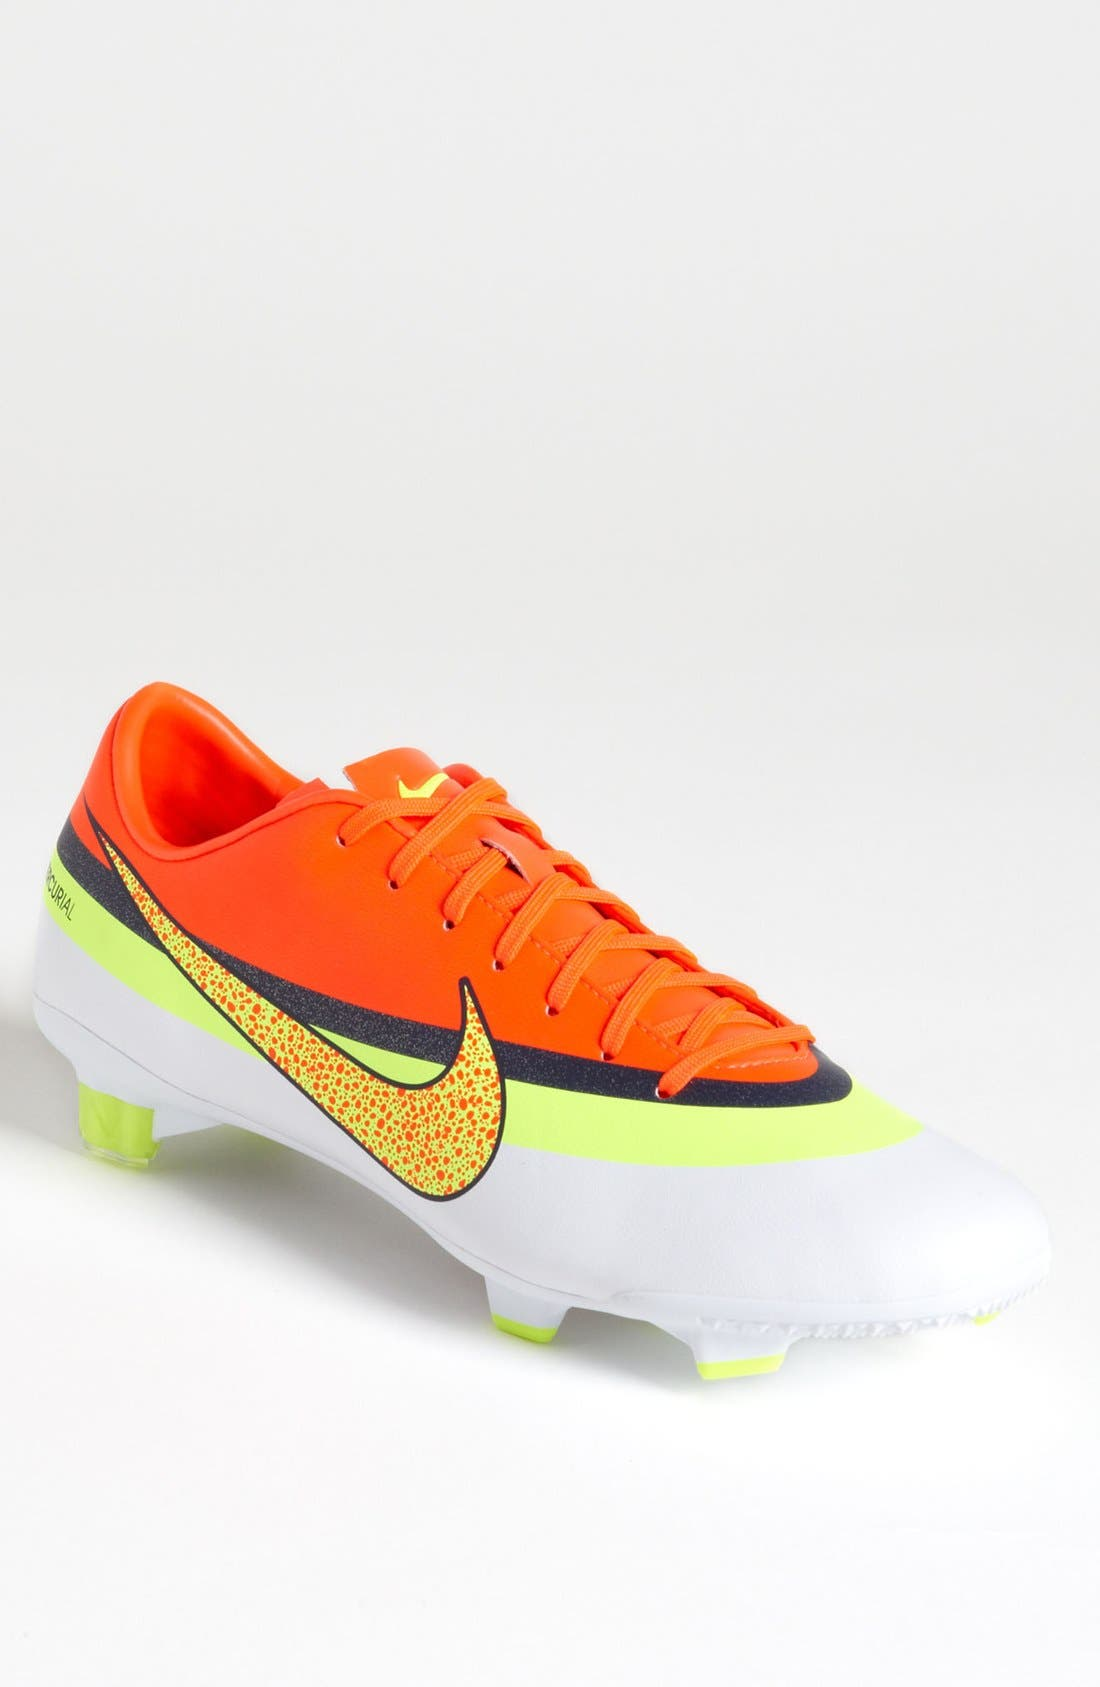 Alternate Image 1 Selected - Nike 'Mercurial Veloce CR FG' Soccer Cleat (Men)